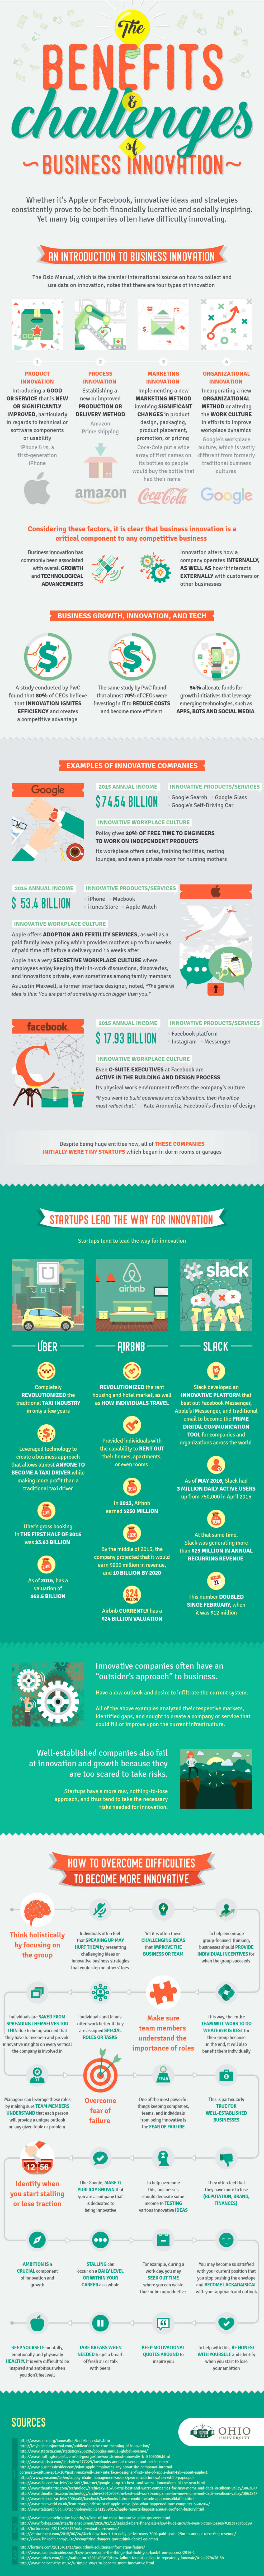 The Benefits Challenges of Business Innovation infographic